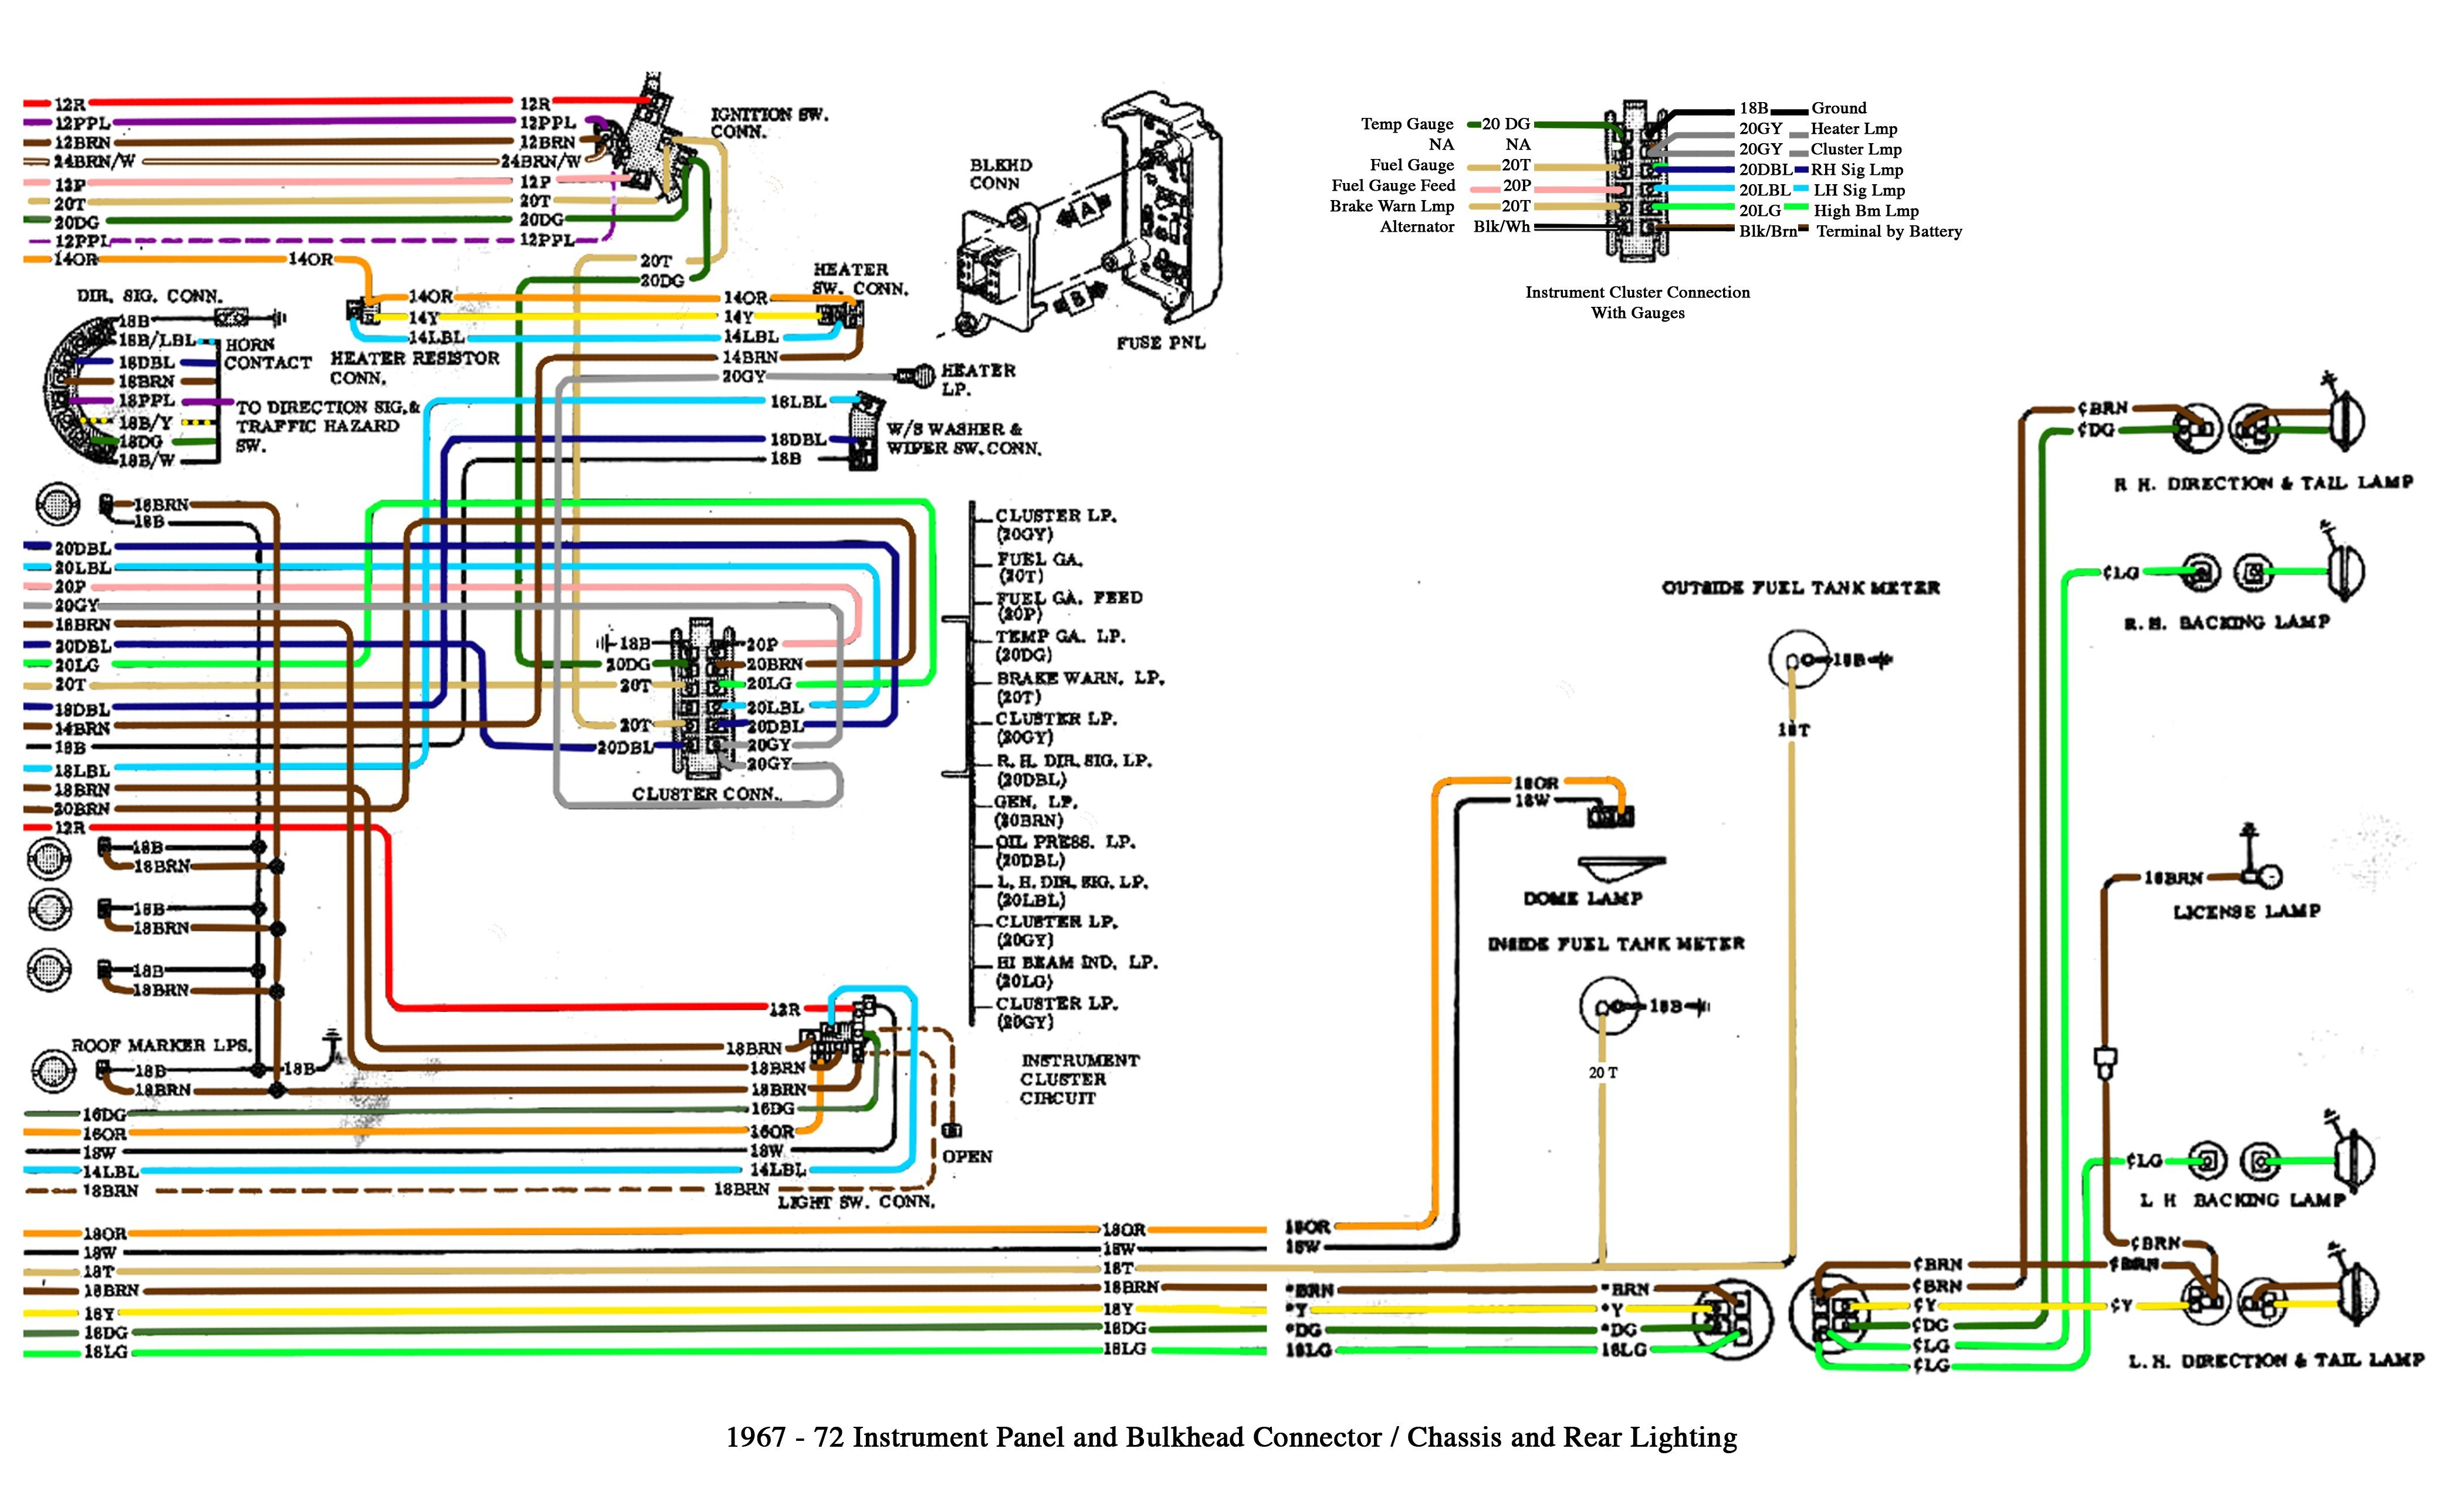 Gmc Tail Light Wiring Harness   Wiring Library - 2005 Chevy Silverado Tail Light Wiring Diagram